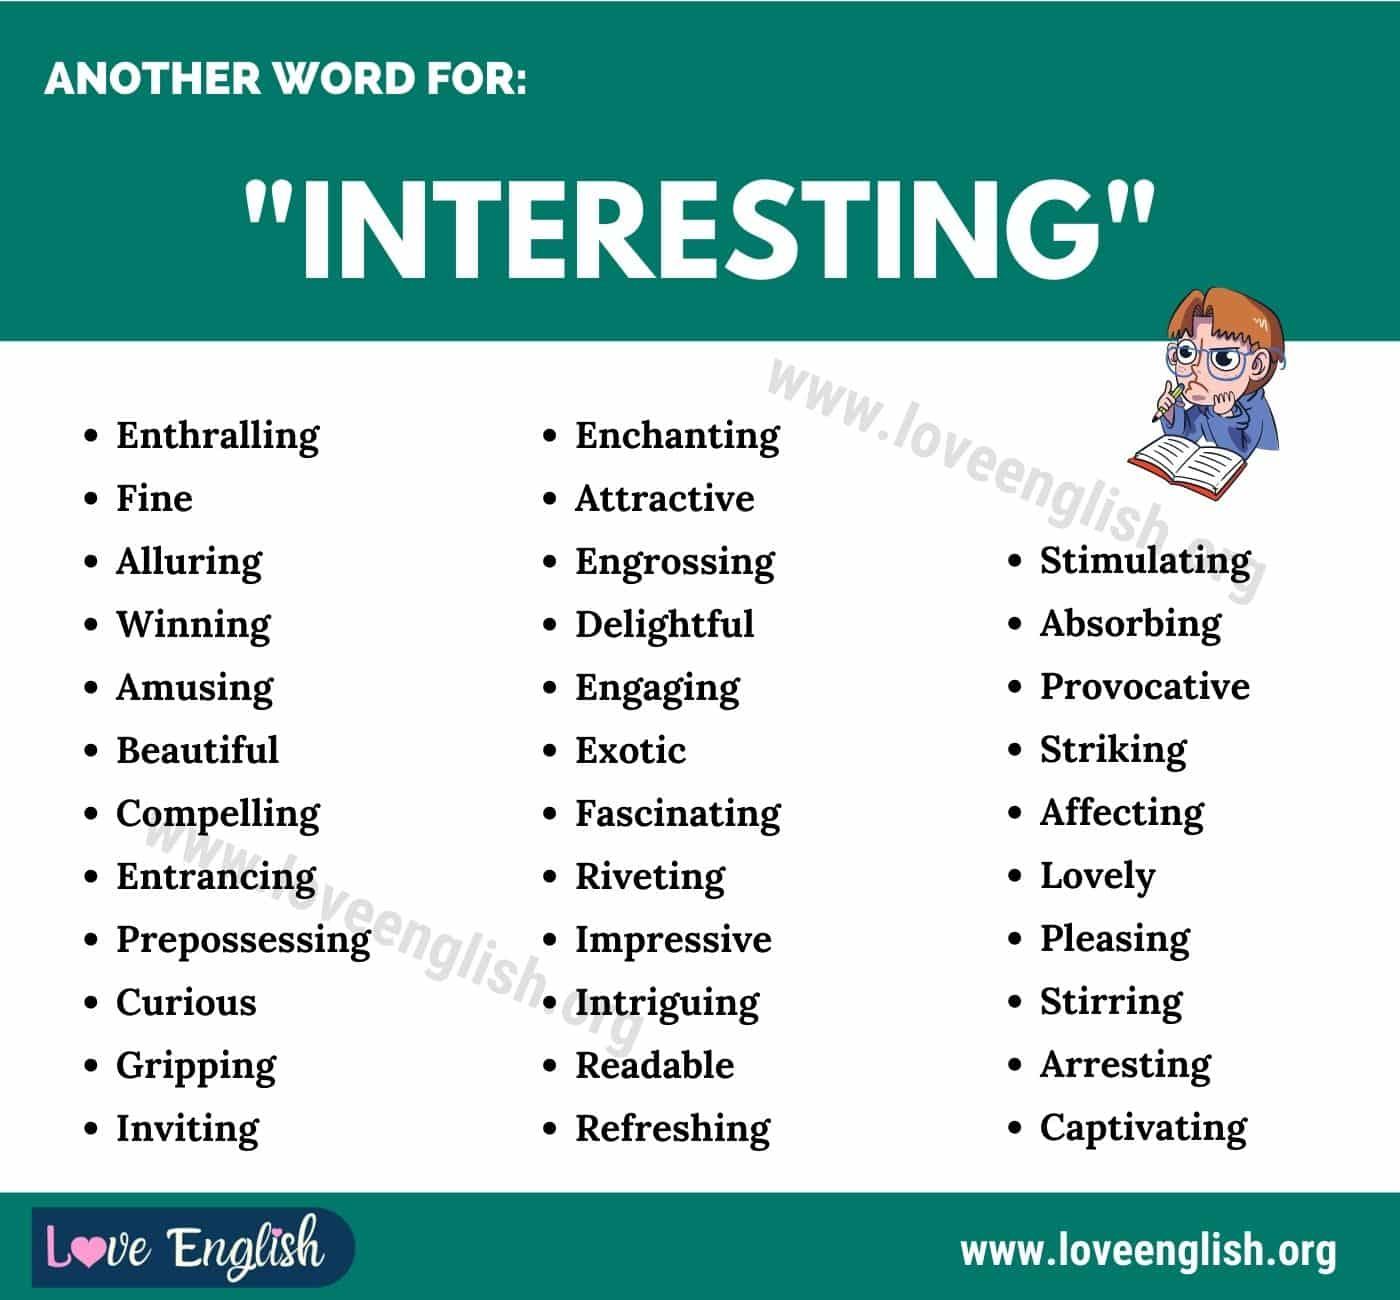 Another Word for Interesting